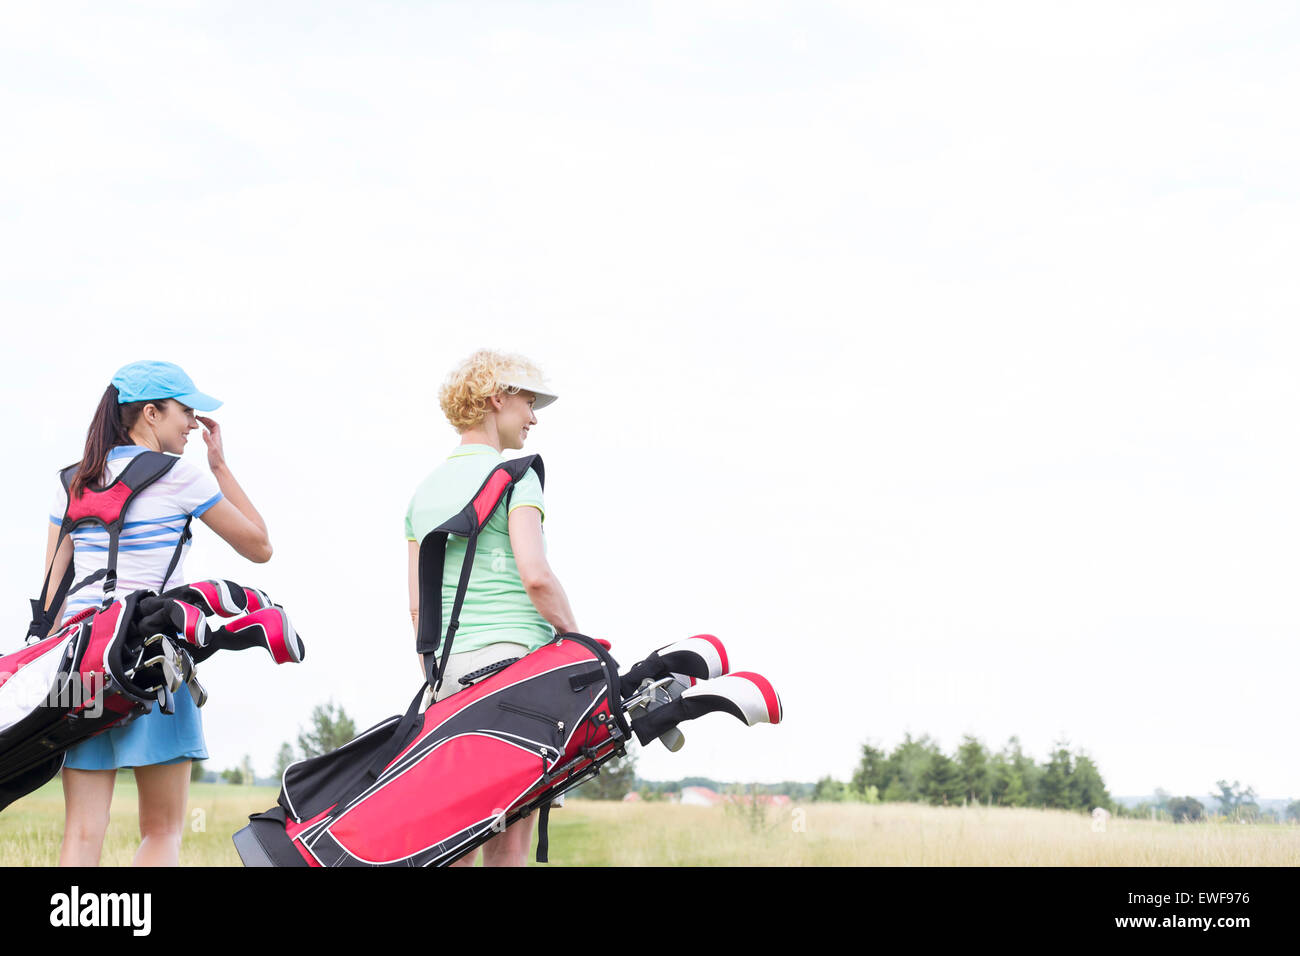 Rear view of women with golf club bags at course against clear sky - Stock Image